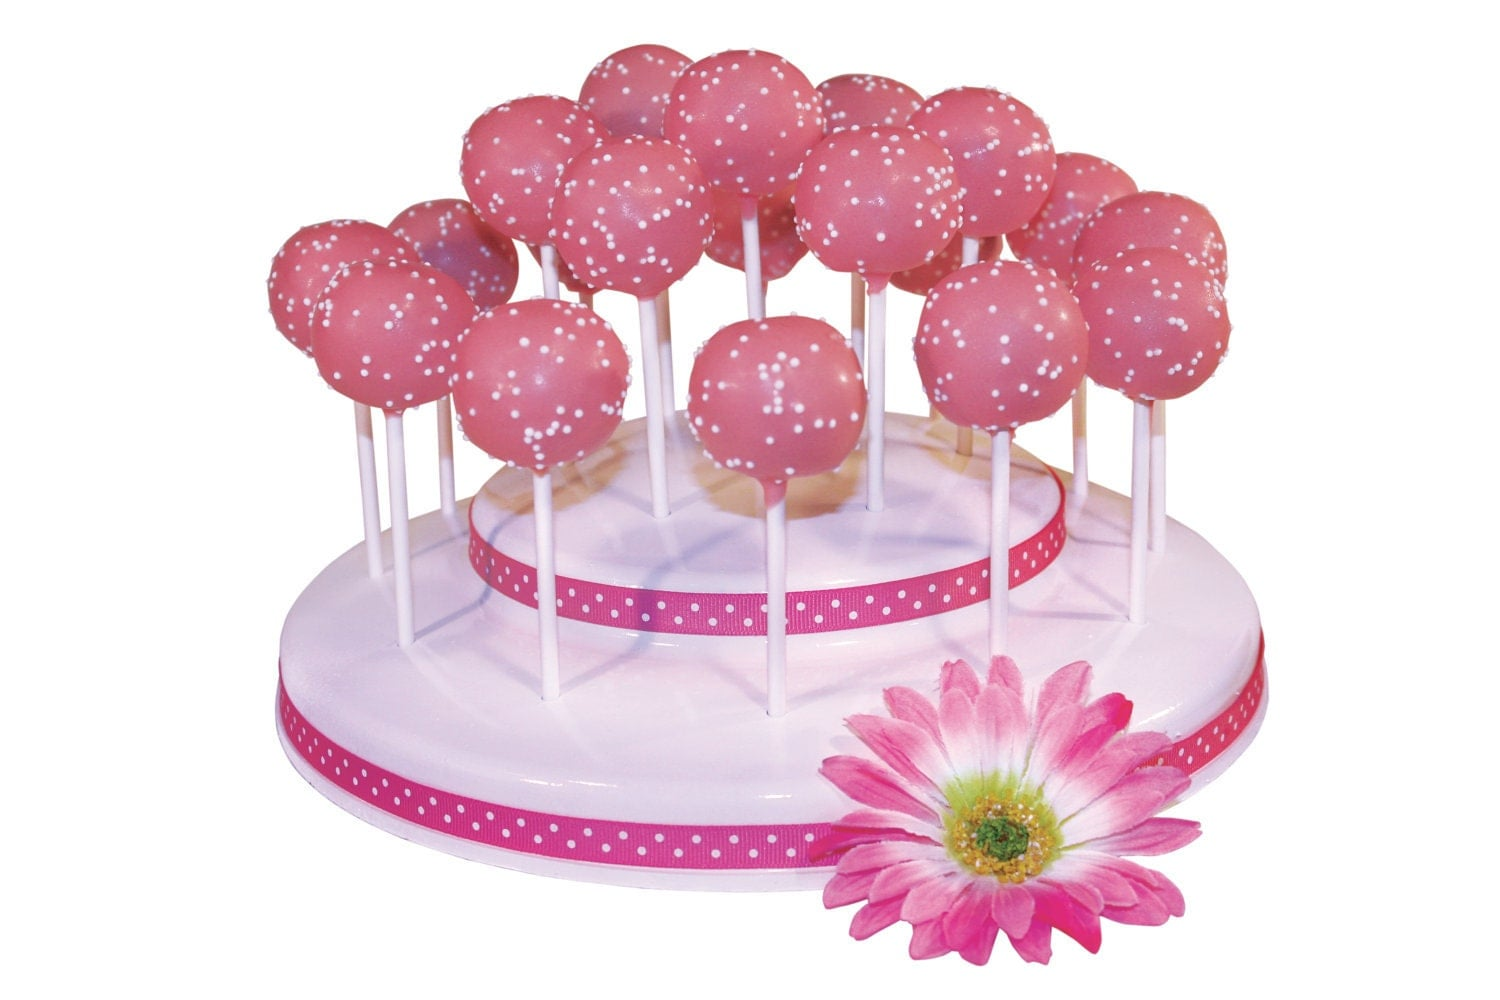 Stand Http Www Etsy Com Listing 78156805 Popztee Cake Pop Stand